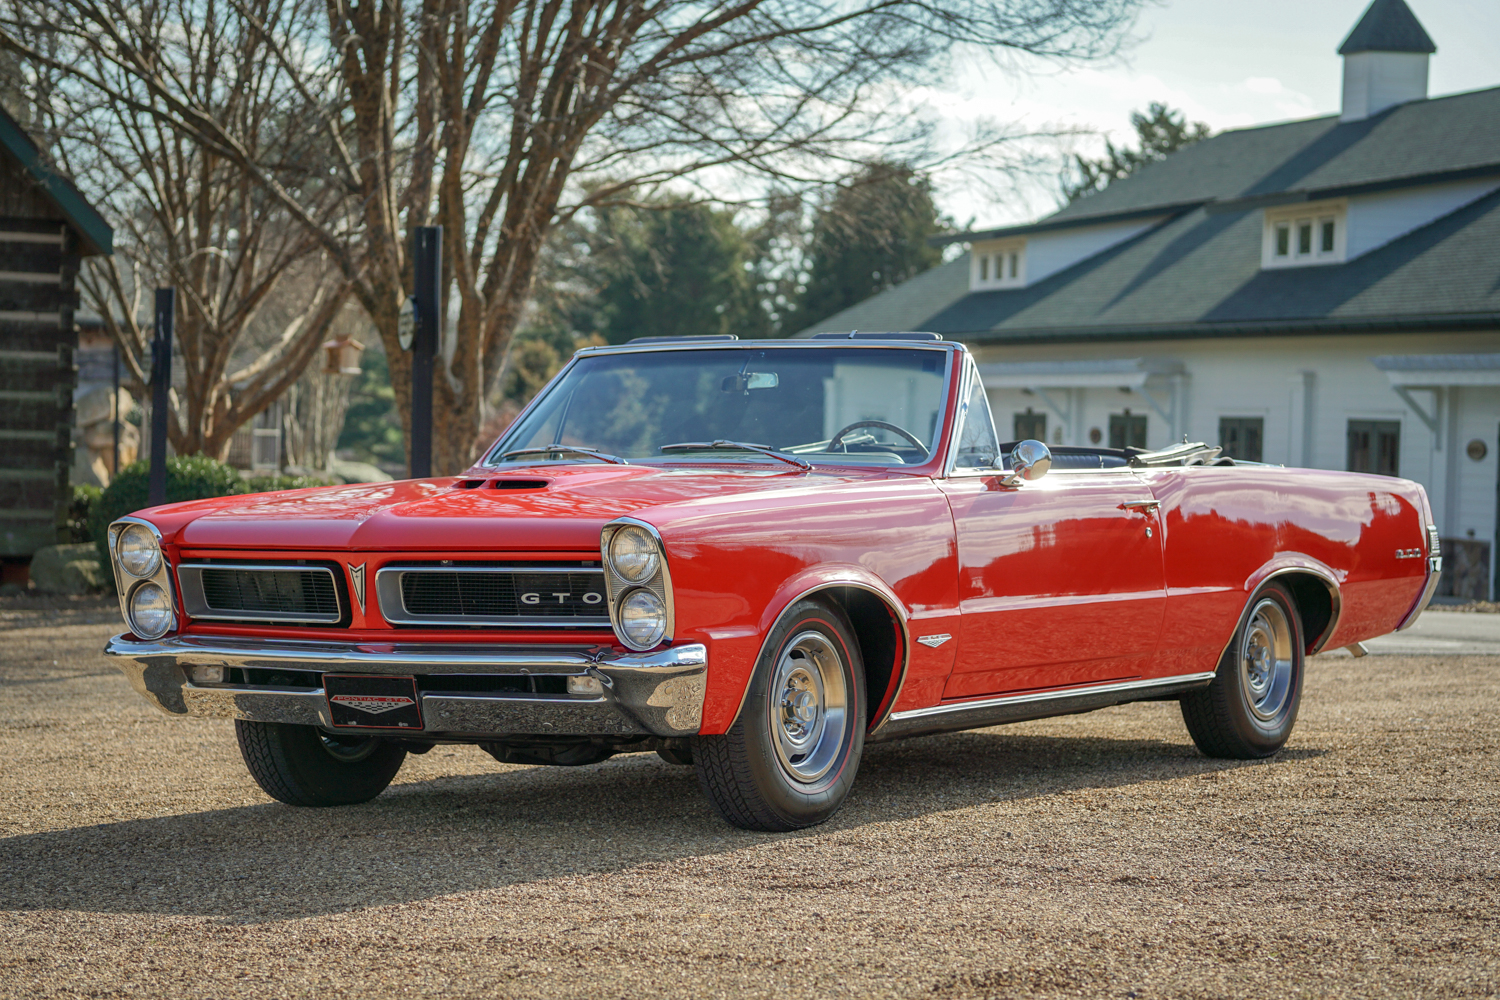 hight resolution of 1965 pontiac gto convertible 389 4 speed for sale on bat auctions closed on february 14 2019 lot 16 336 bring a trailer